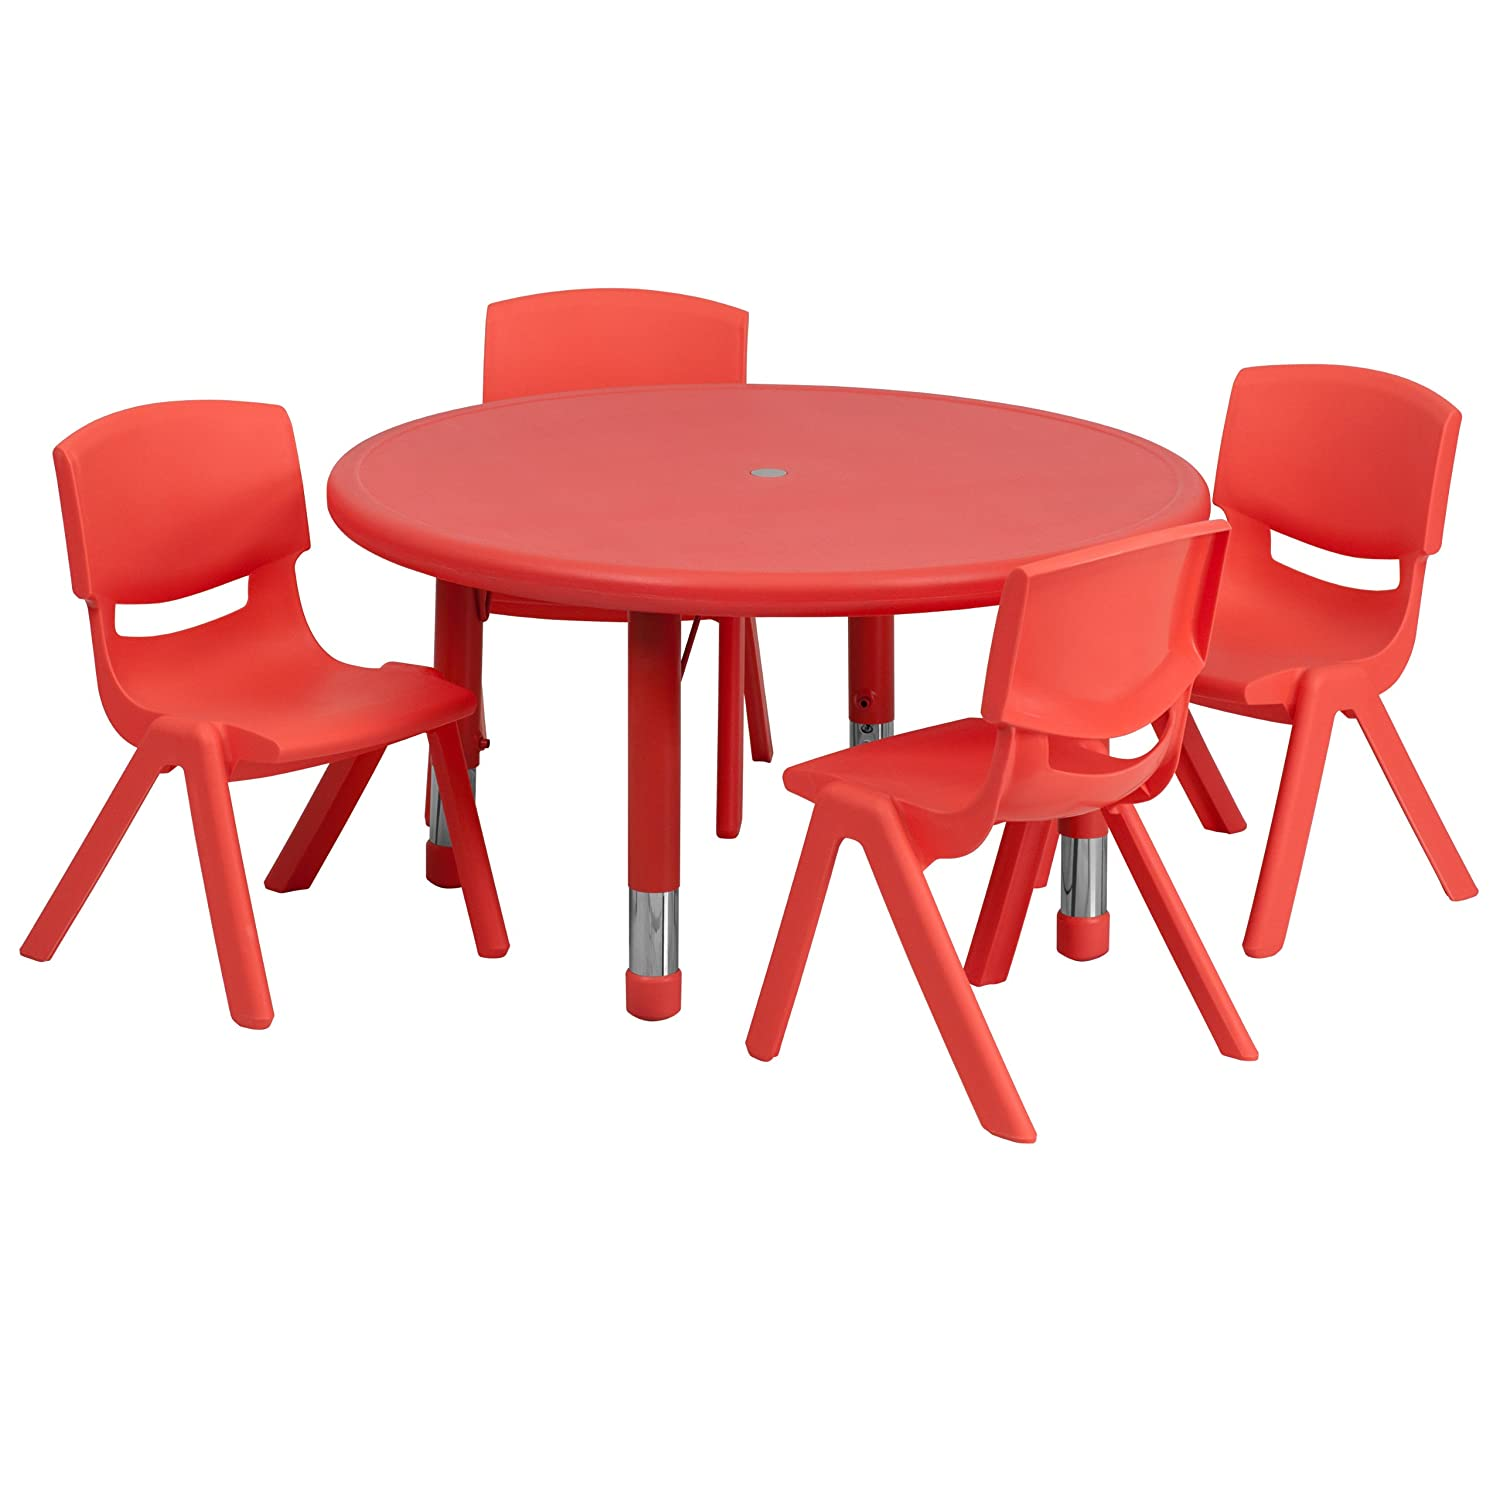 Amazon.com: Flash Furniture 33u0027u0027 Round Red Plastic Height Adjustable  Activity Table Set With 4 Chairs: Baby